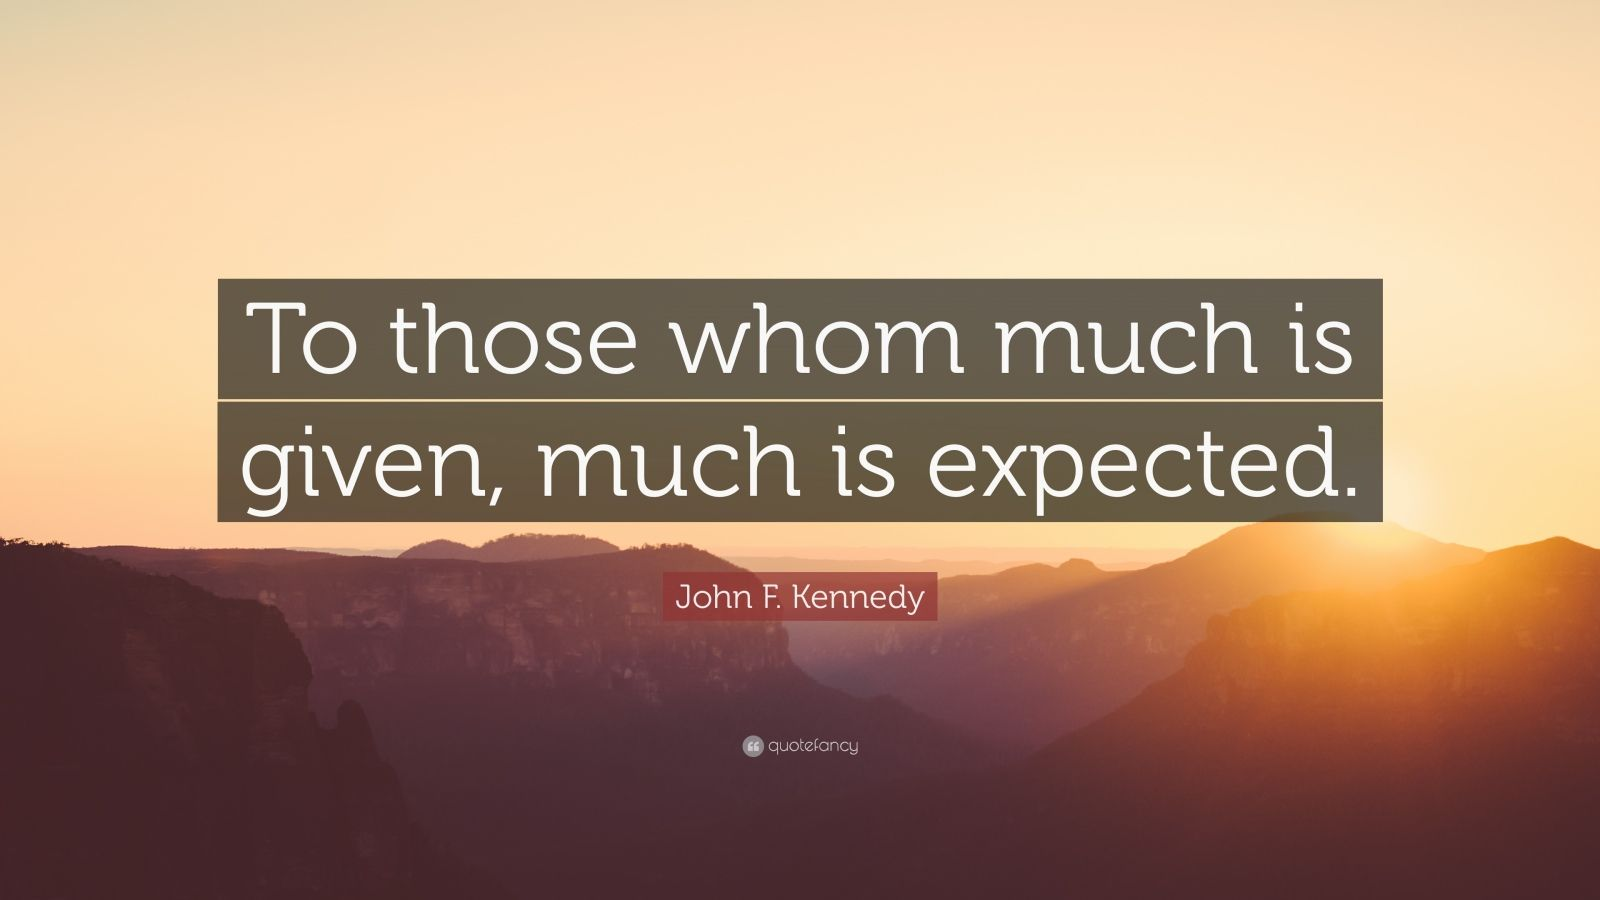 Jfk Quotes Wallpapers John F Kennedy Quote To Those Whom Much Is Given Much